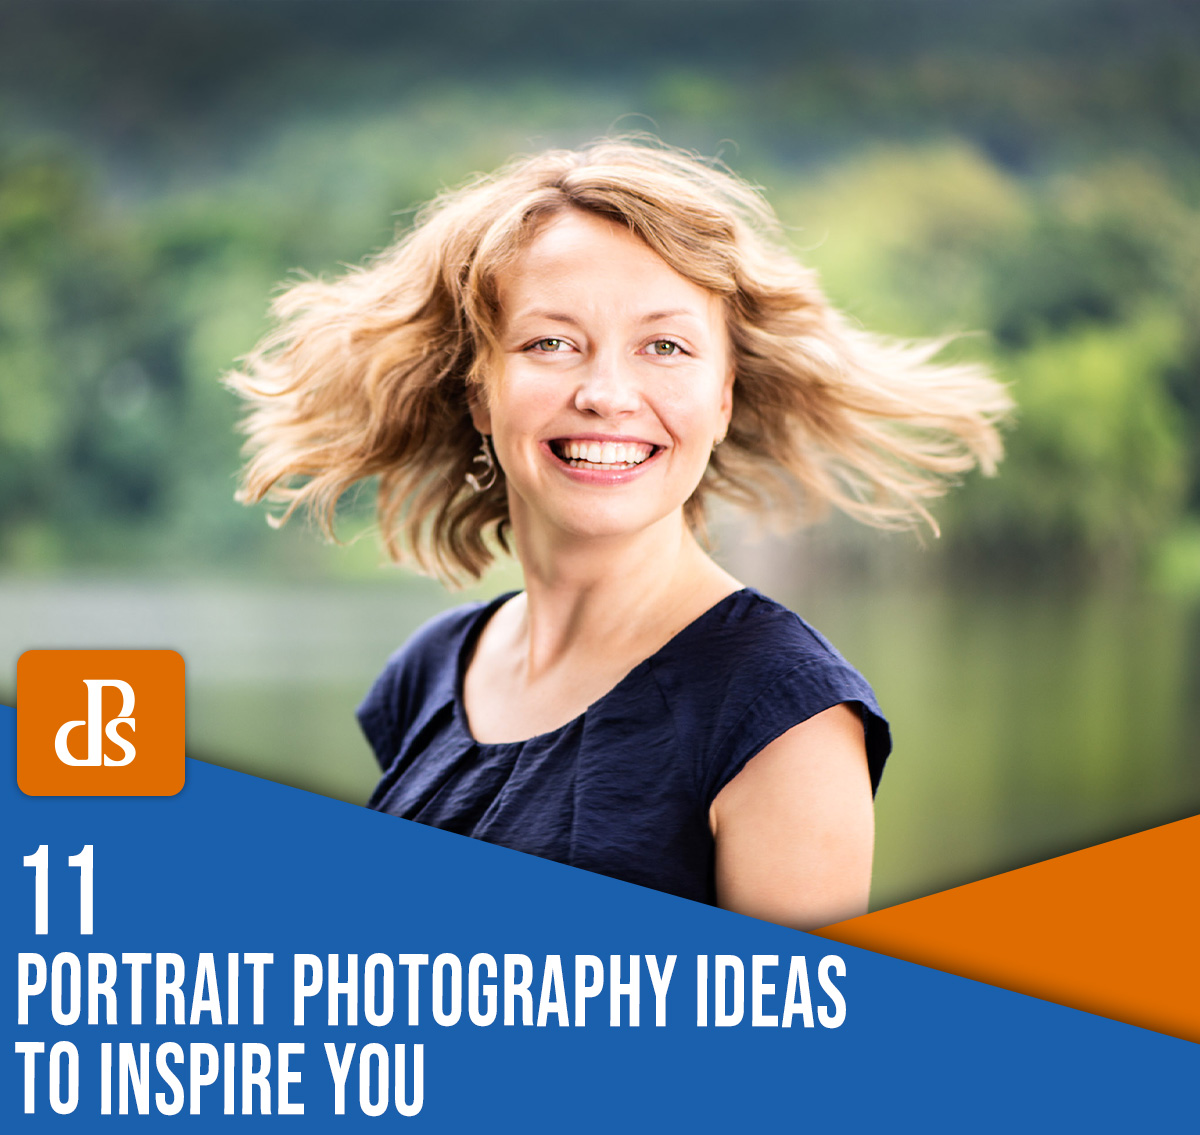 11 Portrait Photography Ideas to Inspire You